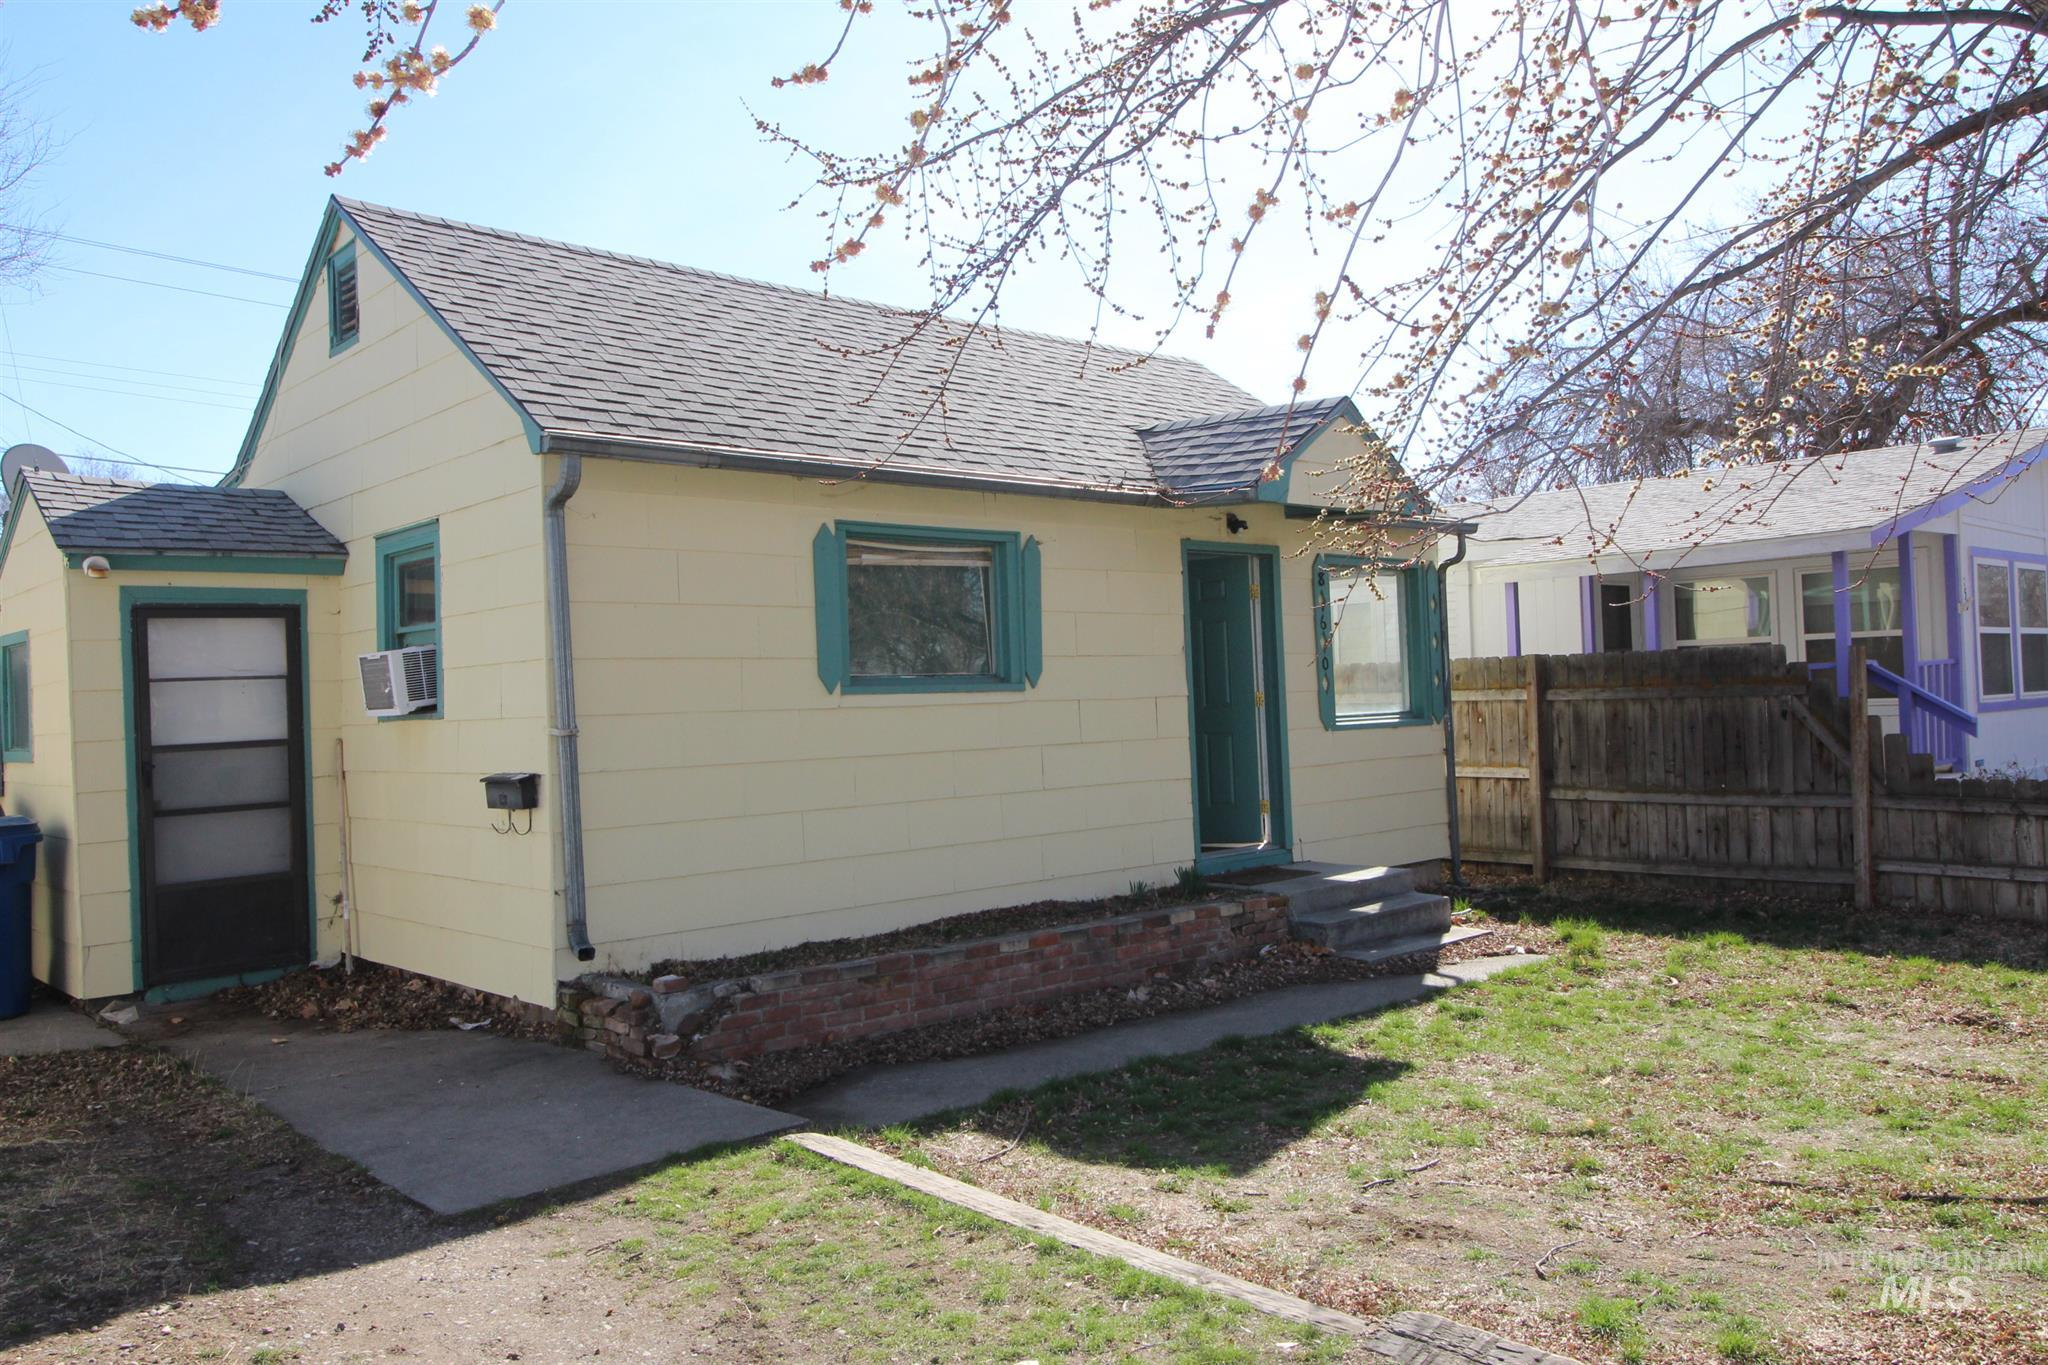 860 N 3rd East, Mountain Home, Idaho 83647, 1 Bedroom, 1 Bathroom, Residential For Sale, Price $139,900, 98790646